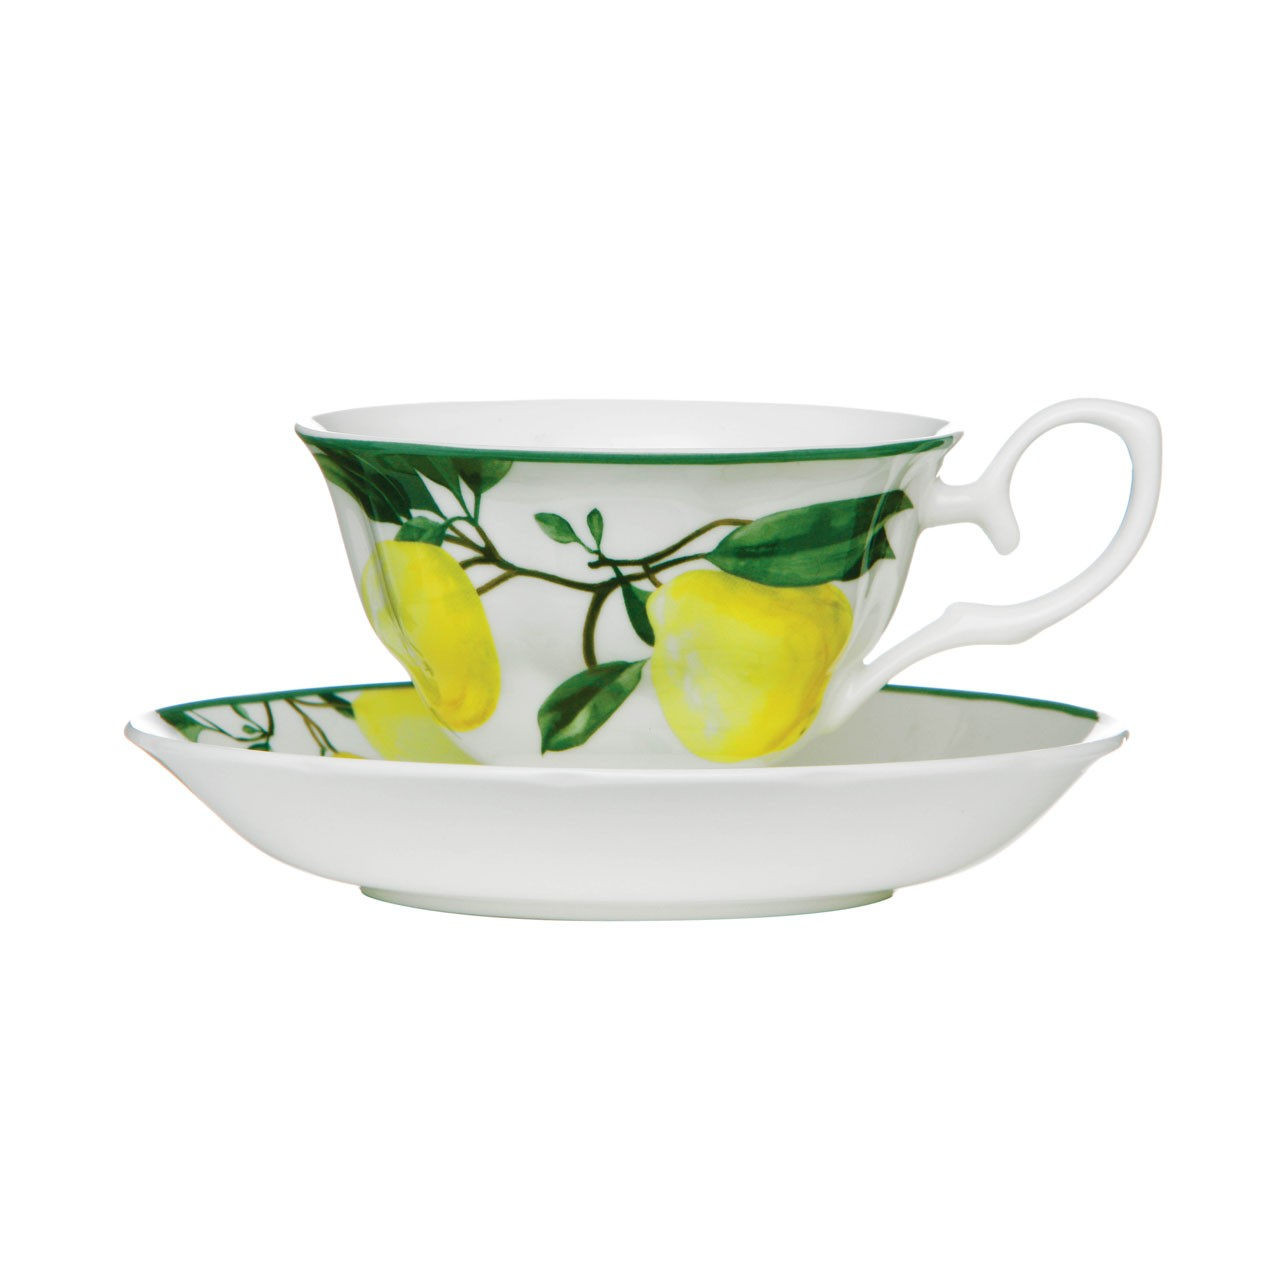 160ml Cup and Saucer, Set of 2, Lemon Tree